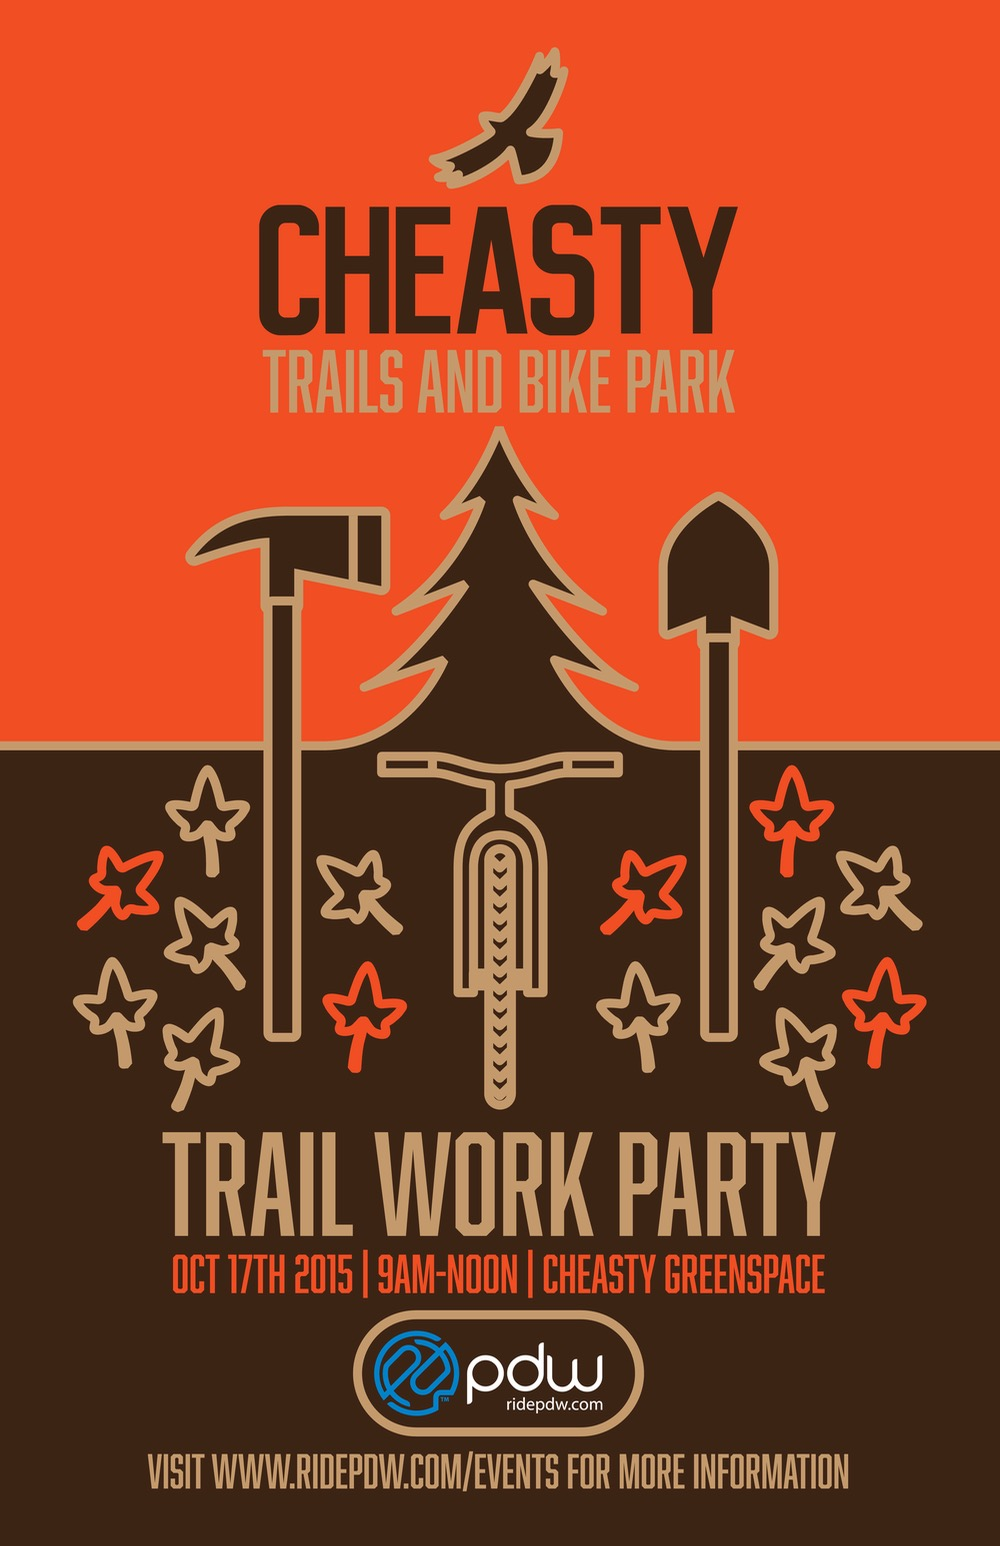 pdw_cheasty_trailday_poster_final_092415